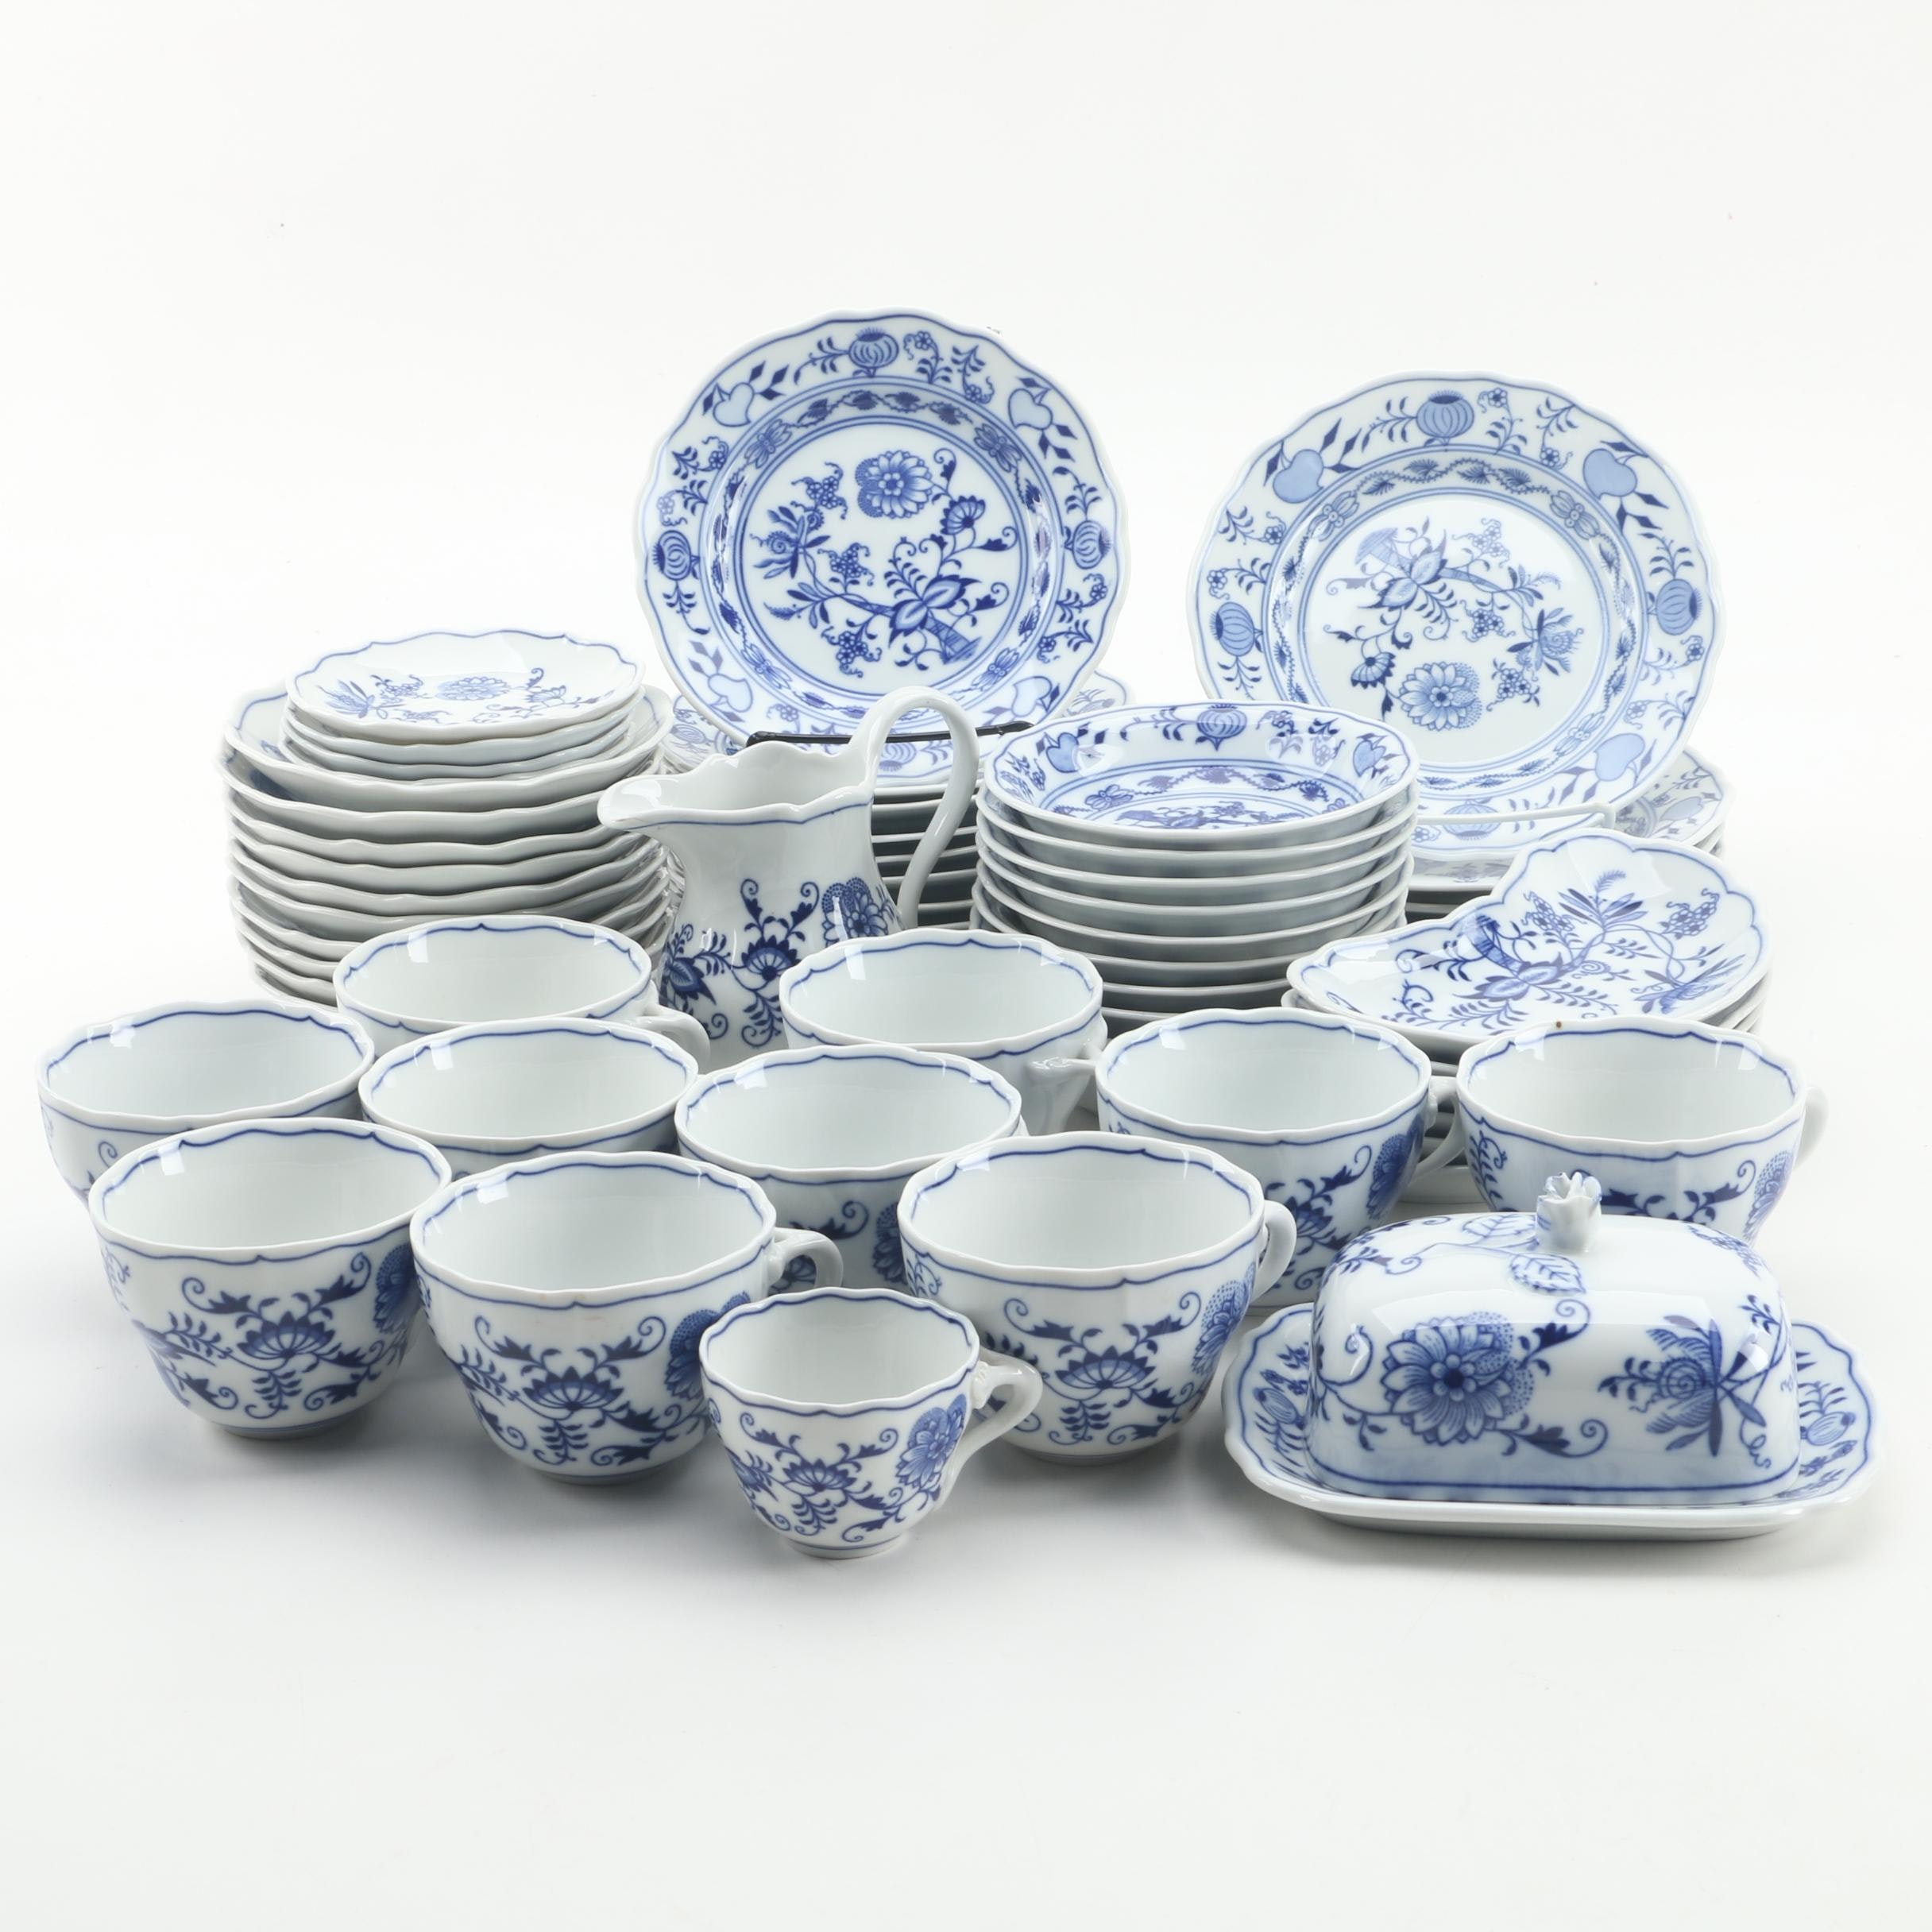 "Duchcov Porcelain ""Blue Onion"" Tableware"